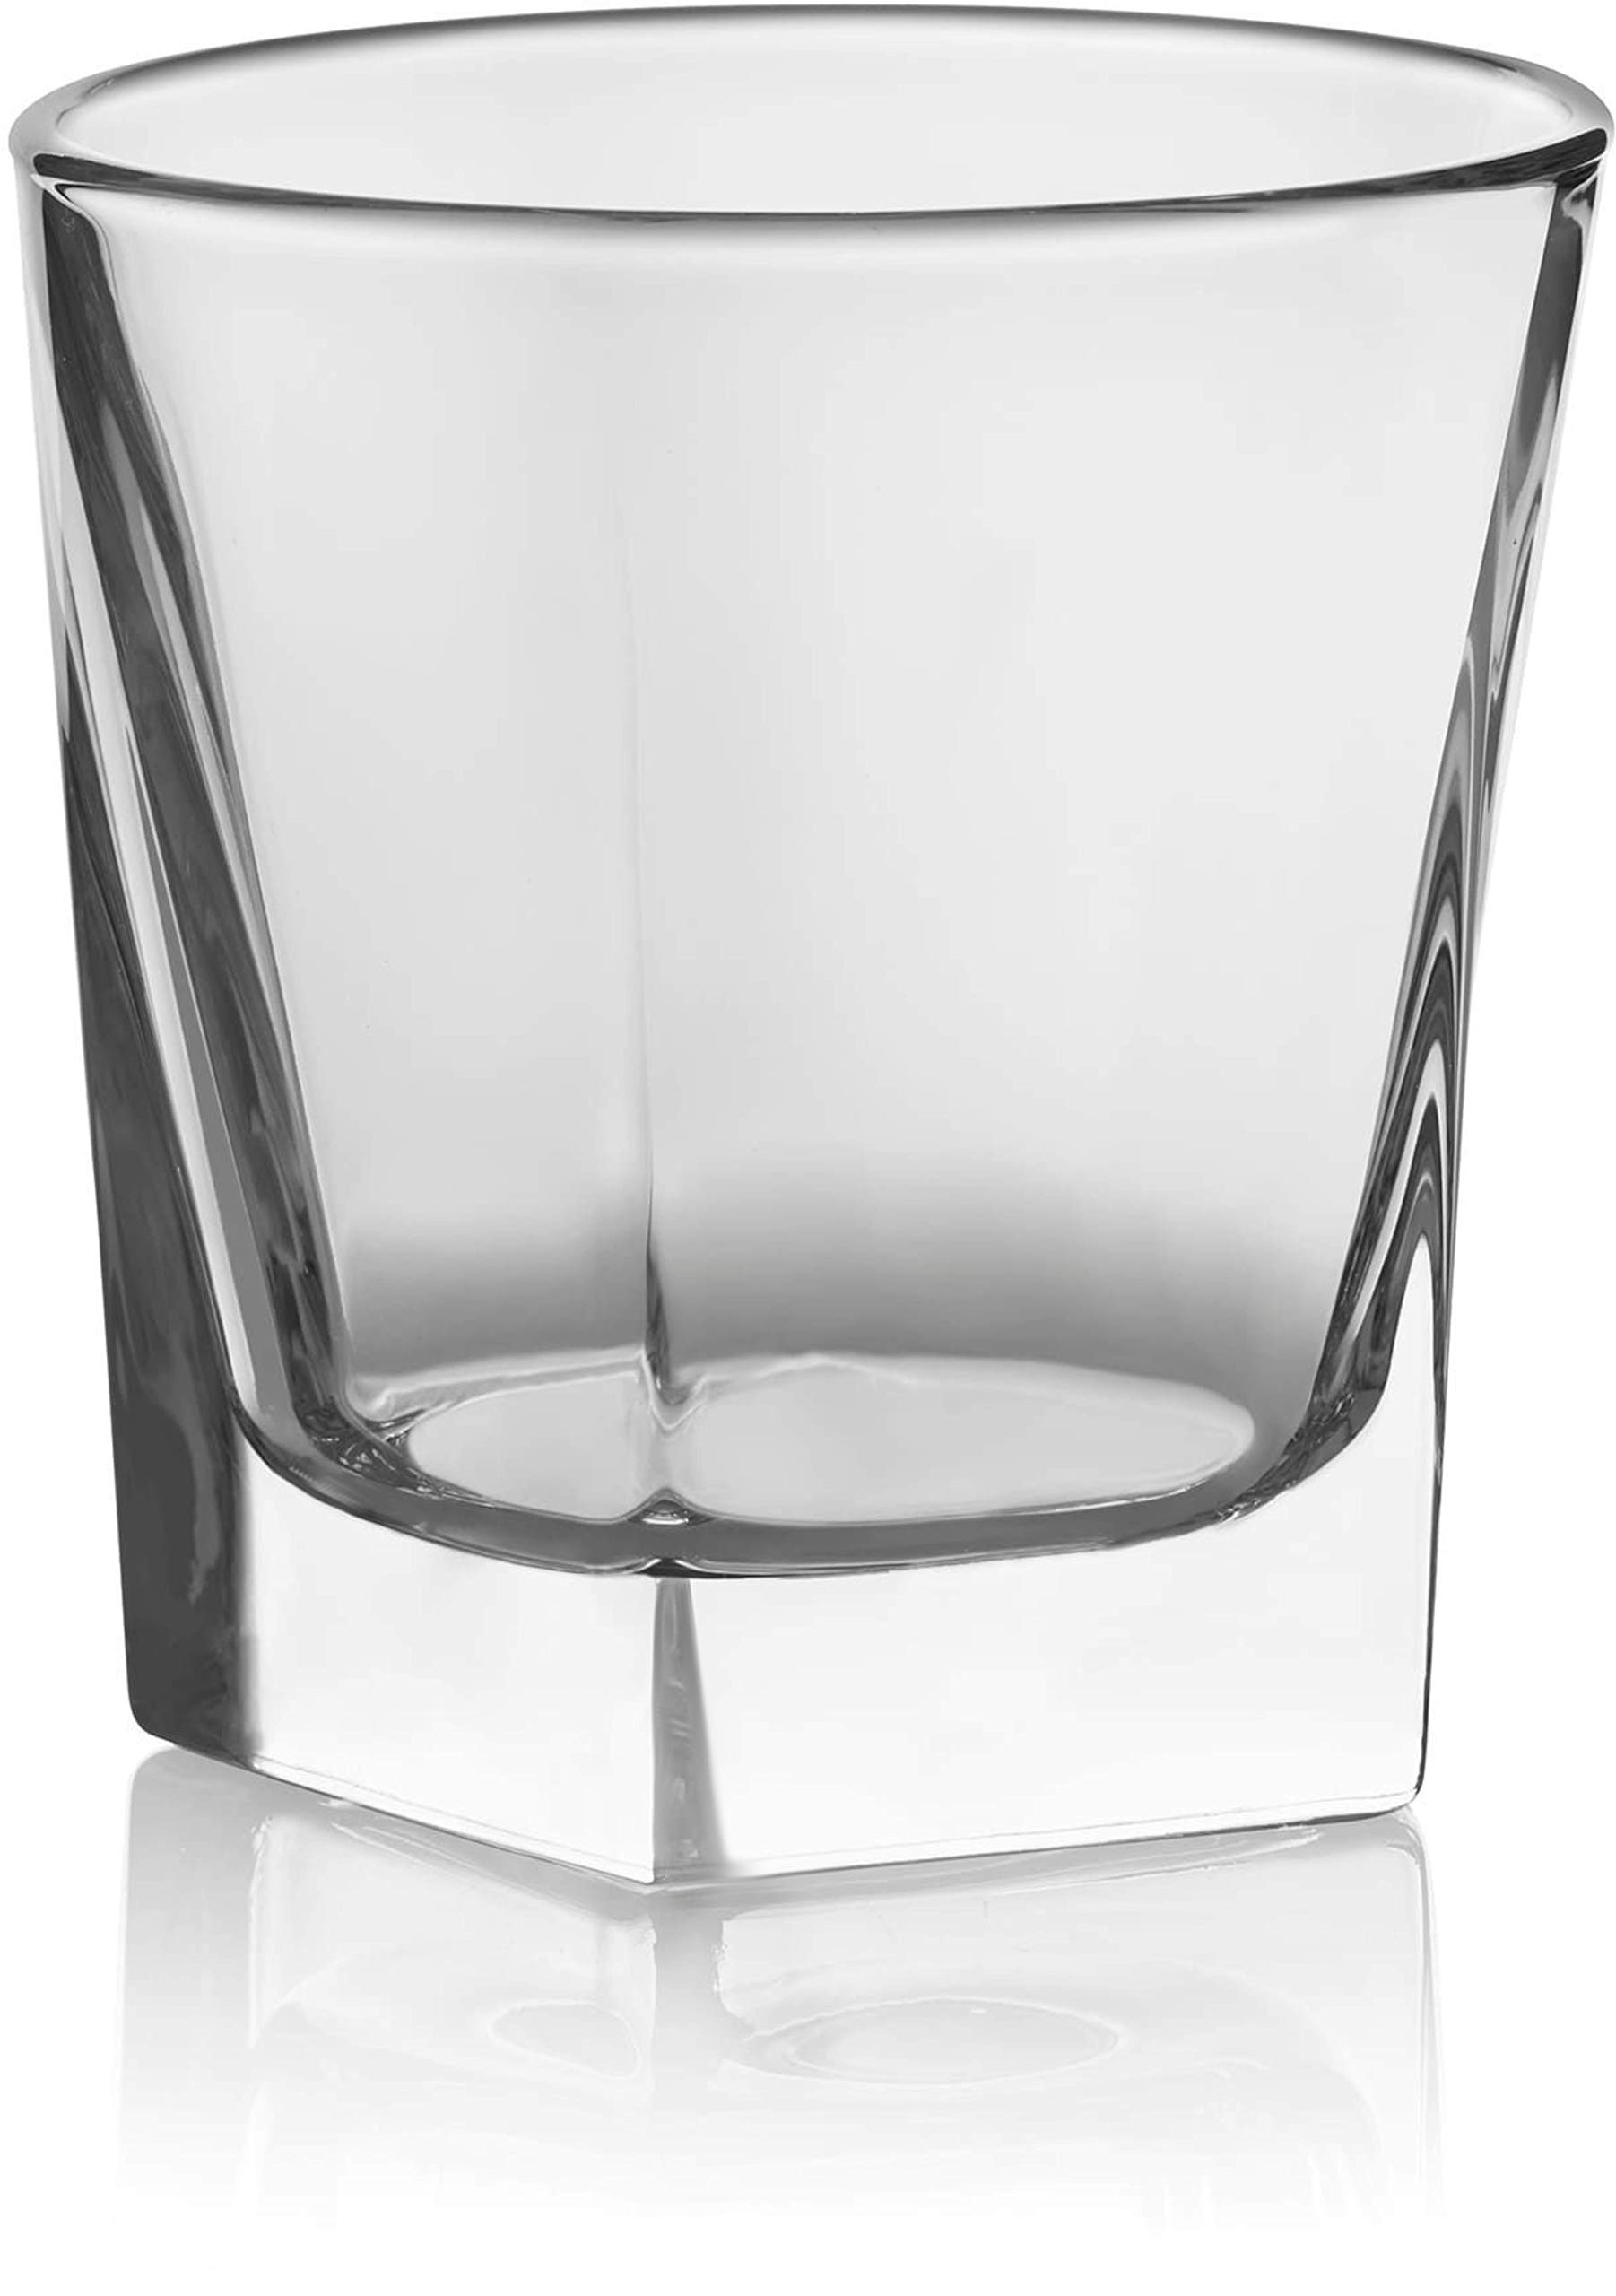 Circleware Ice Cube Heavy Base Whiskey Glass, Set of 4, Kitchen Entertainment Drinking Glassware for Water, Juice, Beer and Bar Liquor Dining Decor Beverage Cups Gifts, 10 oz